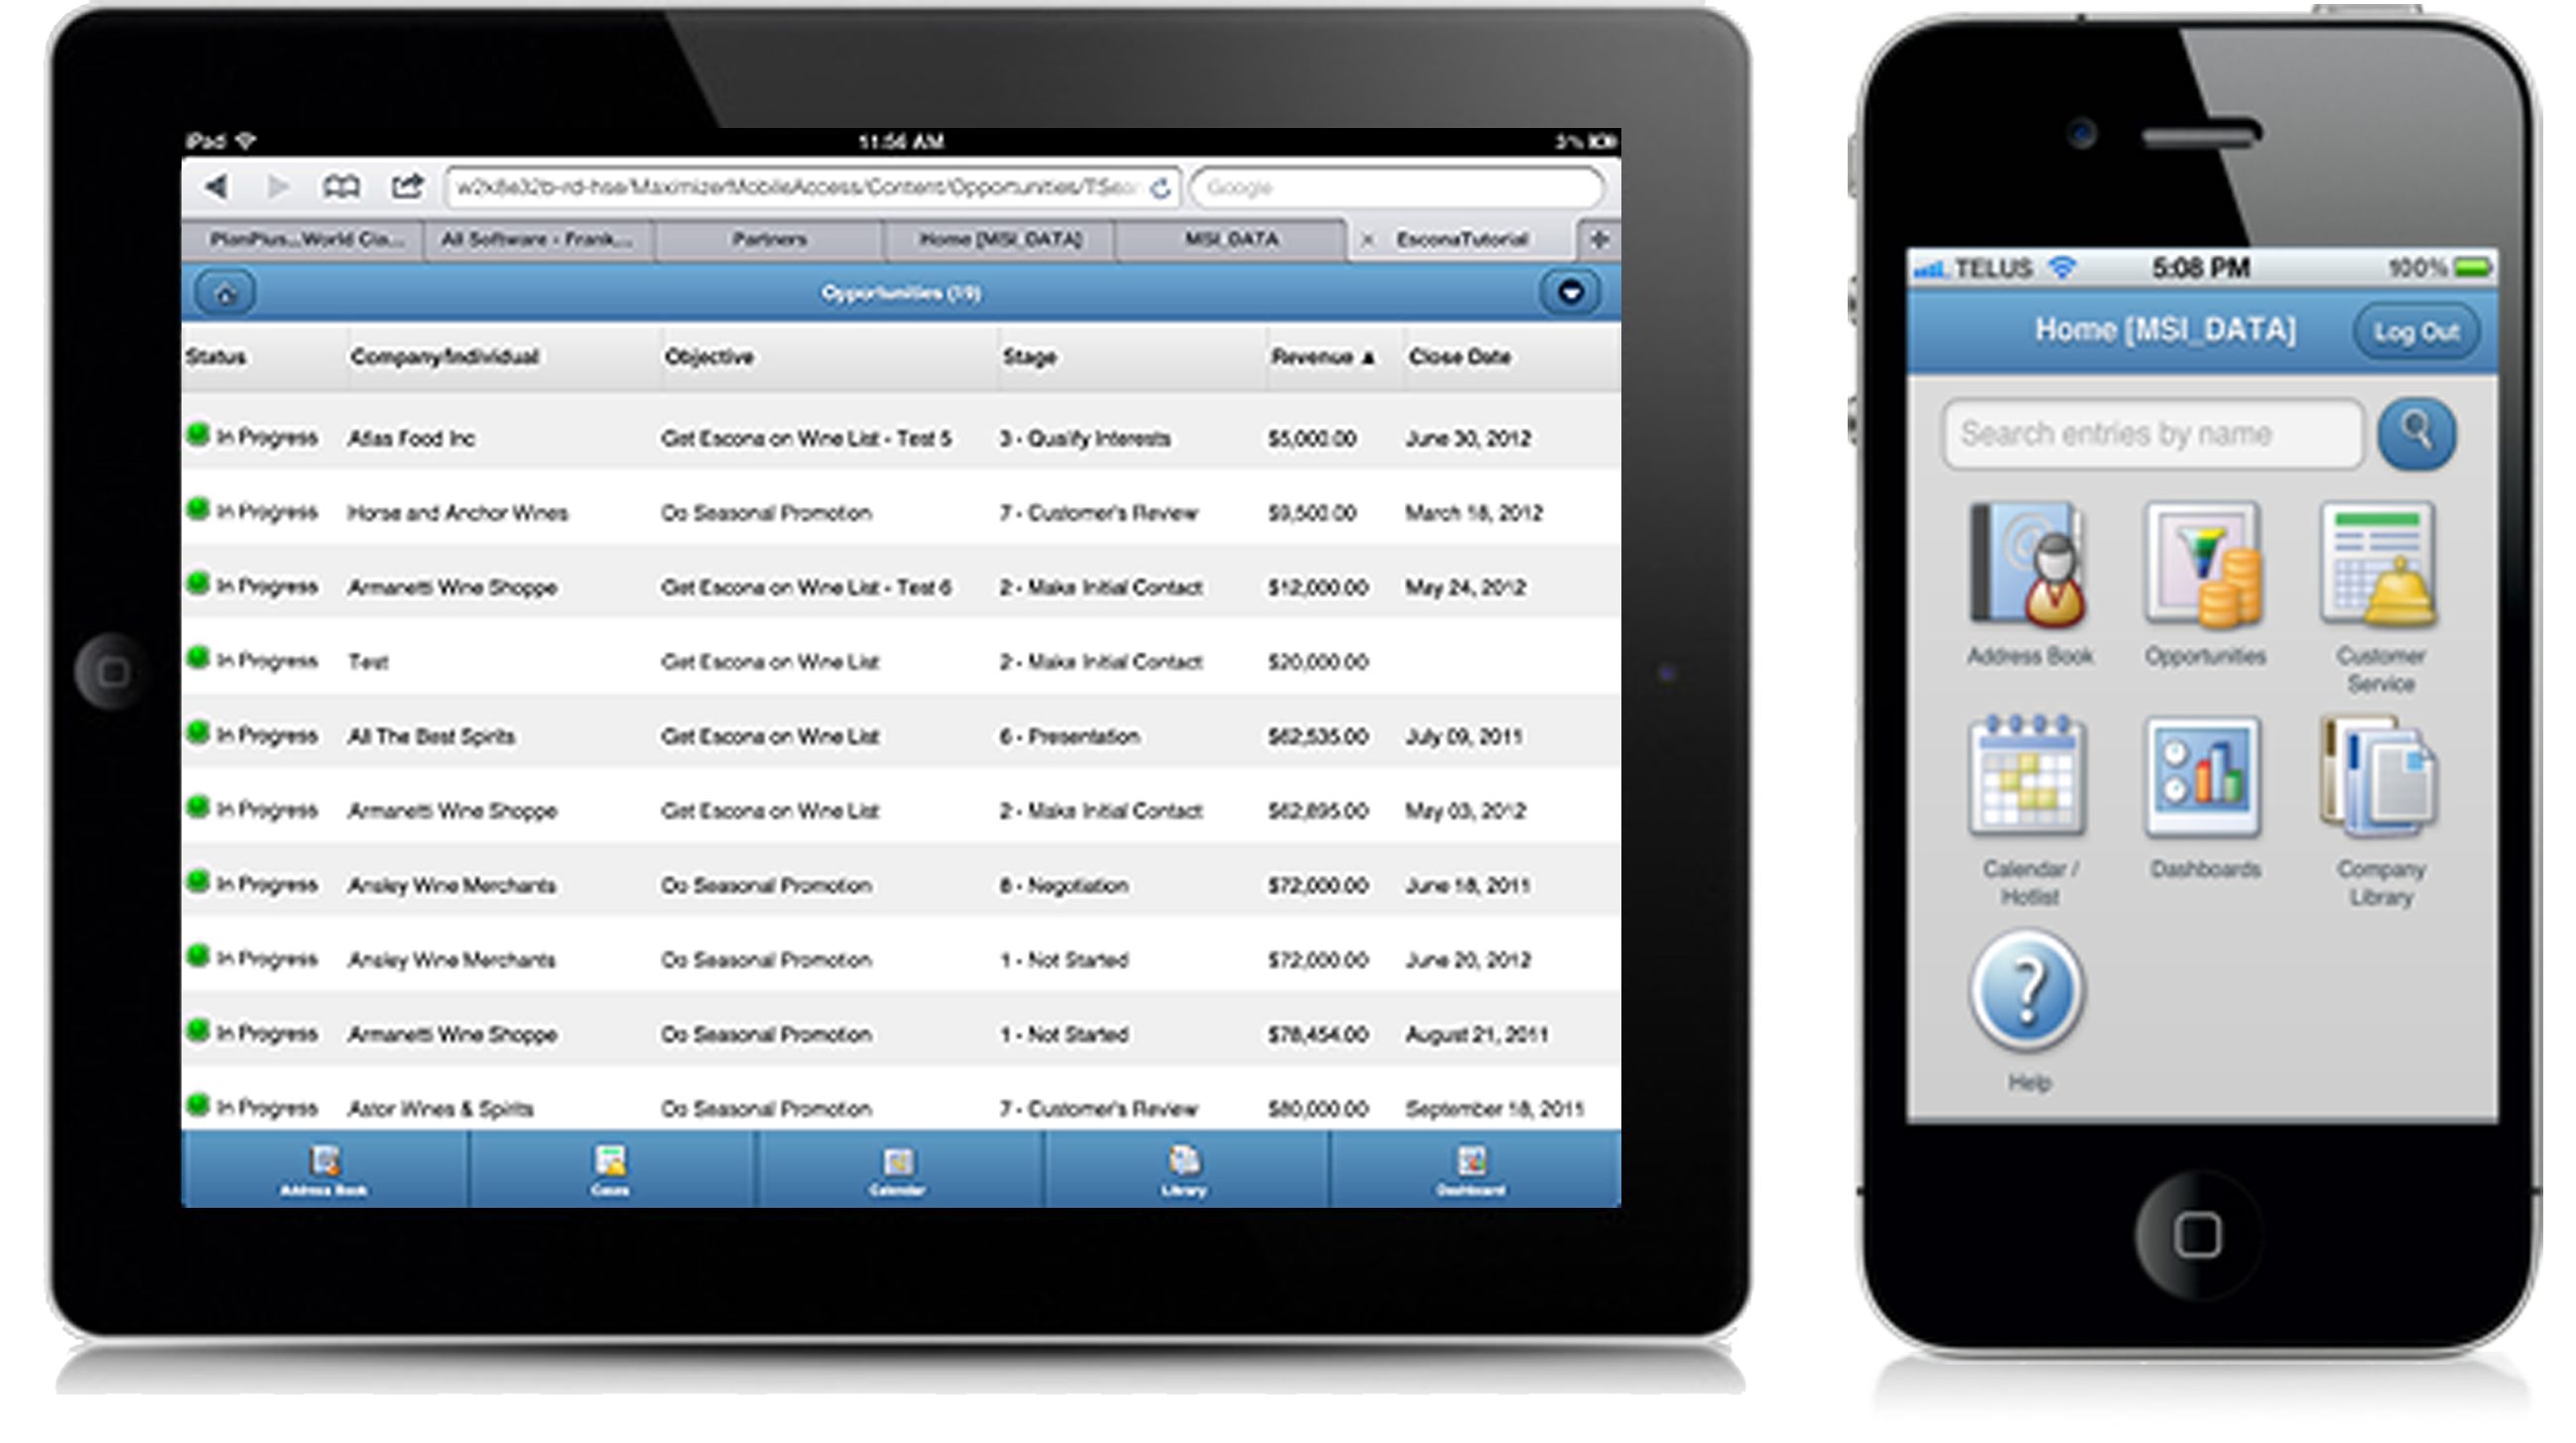 Maximizer mobile CRM access